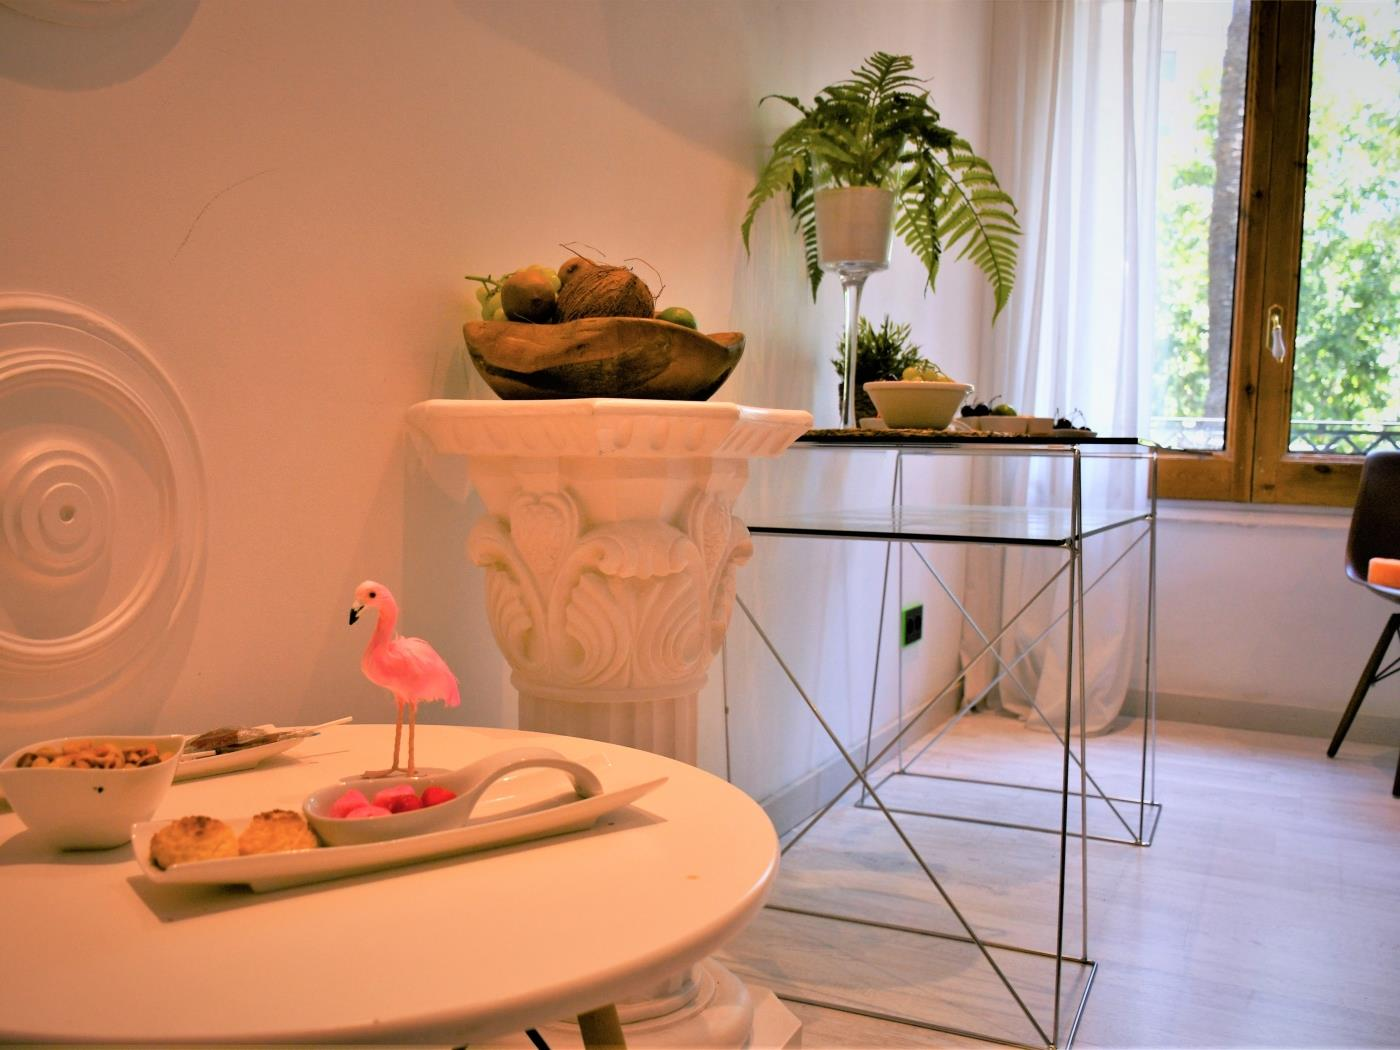 City Center Diagonal double room with private bathroom for 2 - My Space Barcelona Appartementen